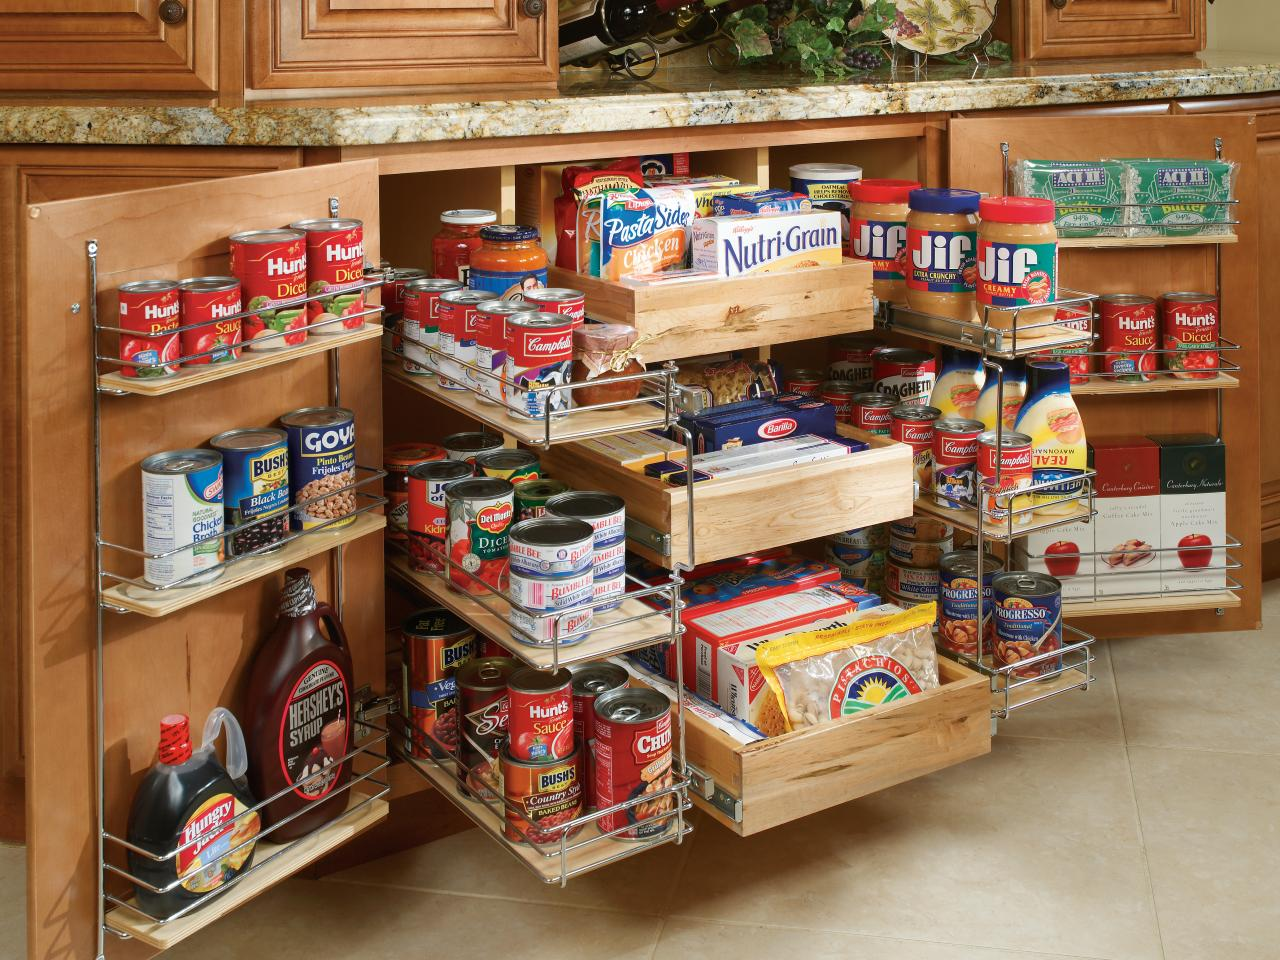 An organised kitchen pantry can leave your kitchen looking elegant